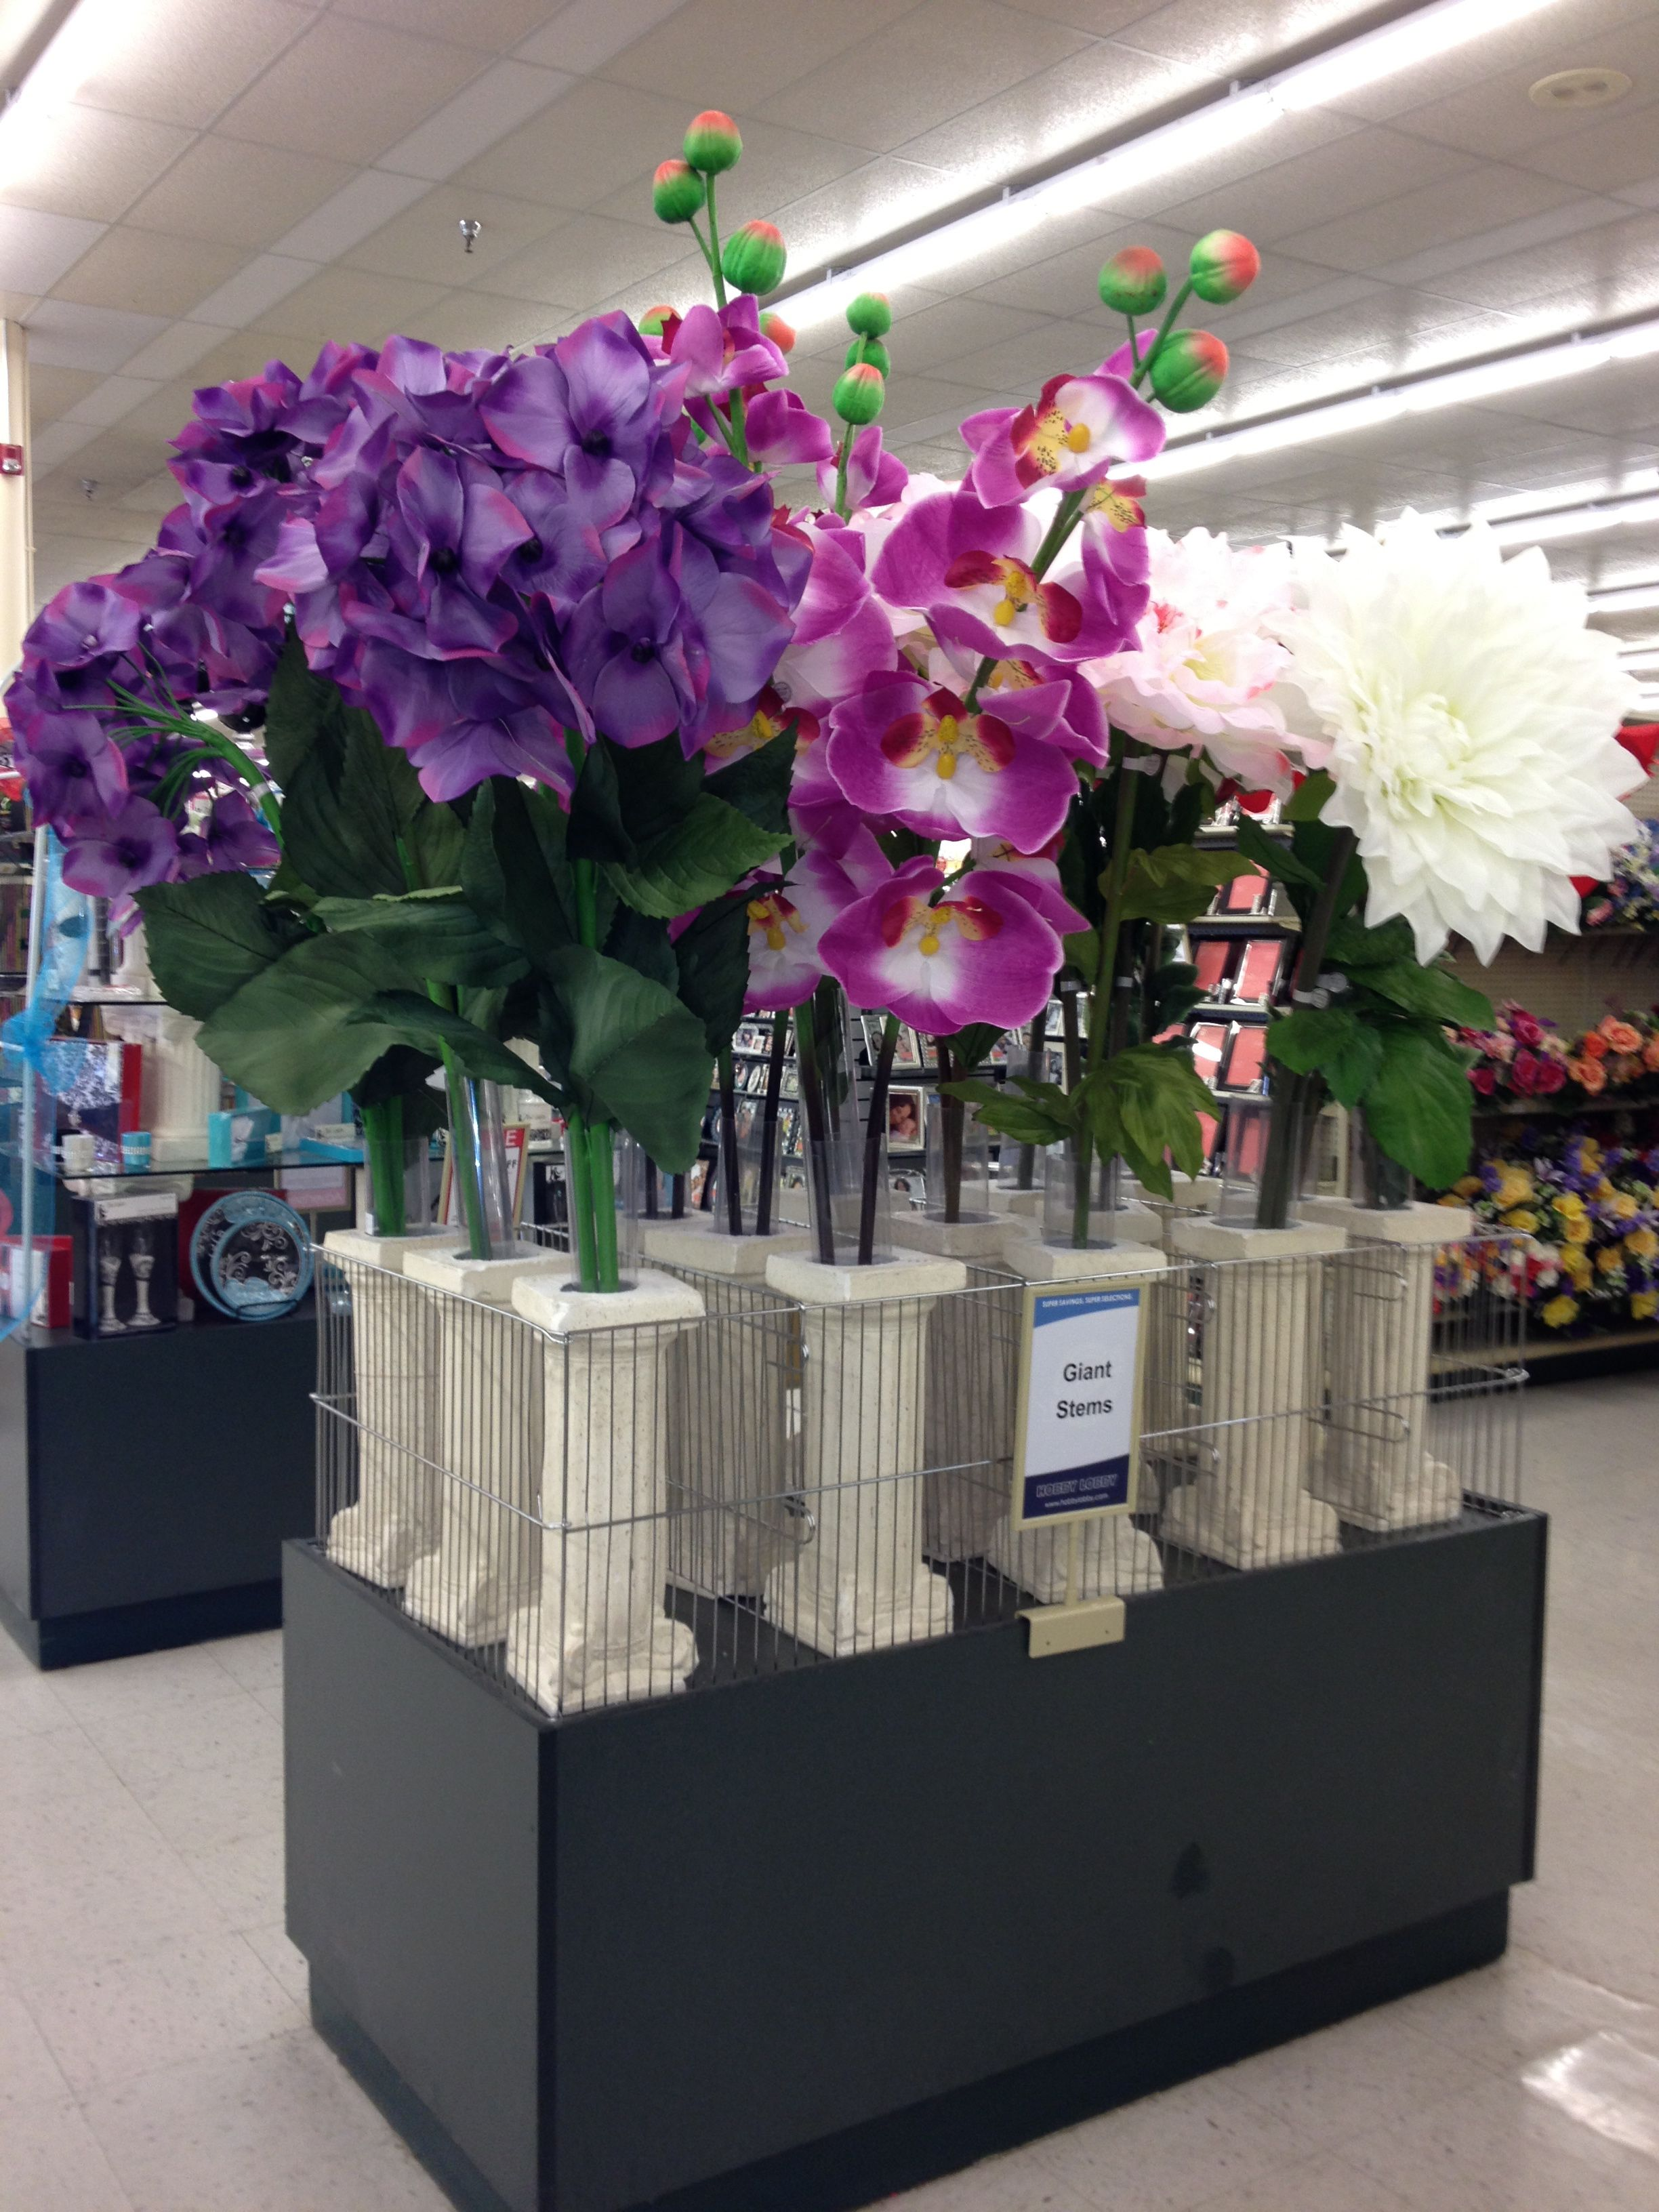 Giant Flowers at Hobby Lobby!! I love them all, but what